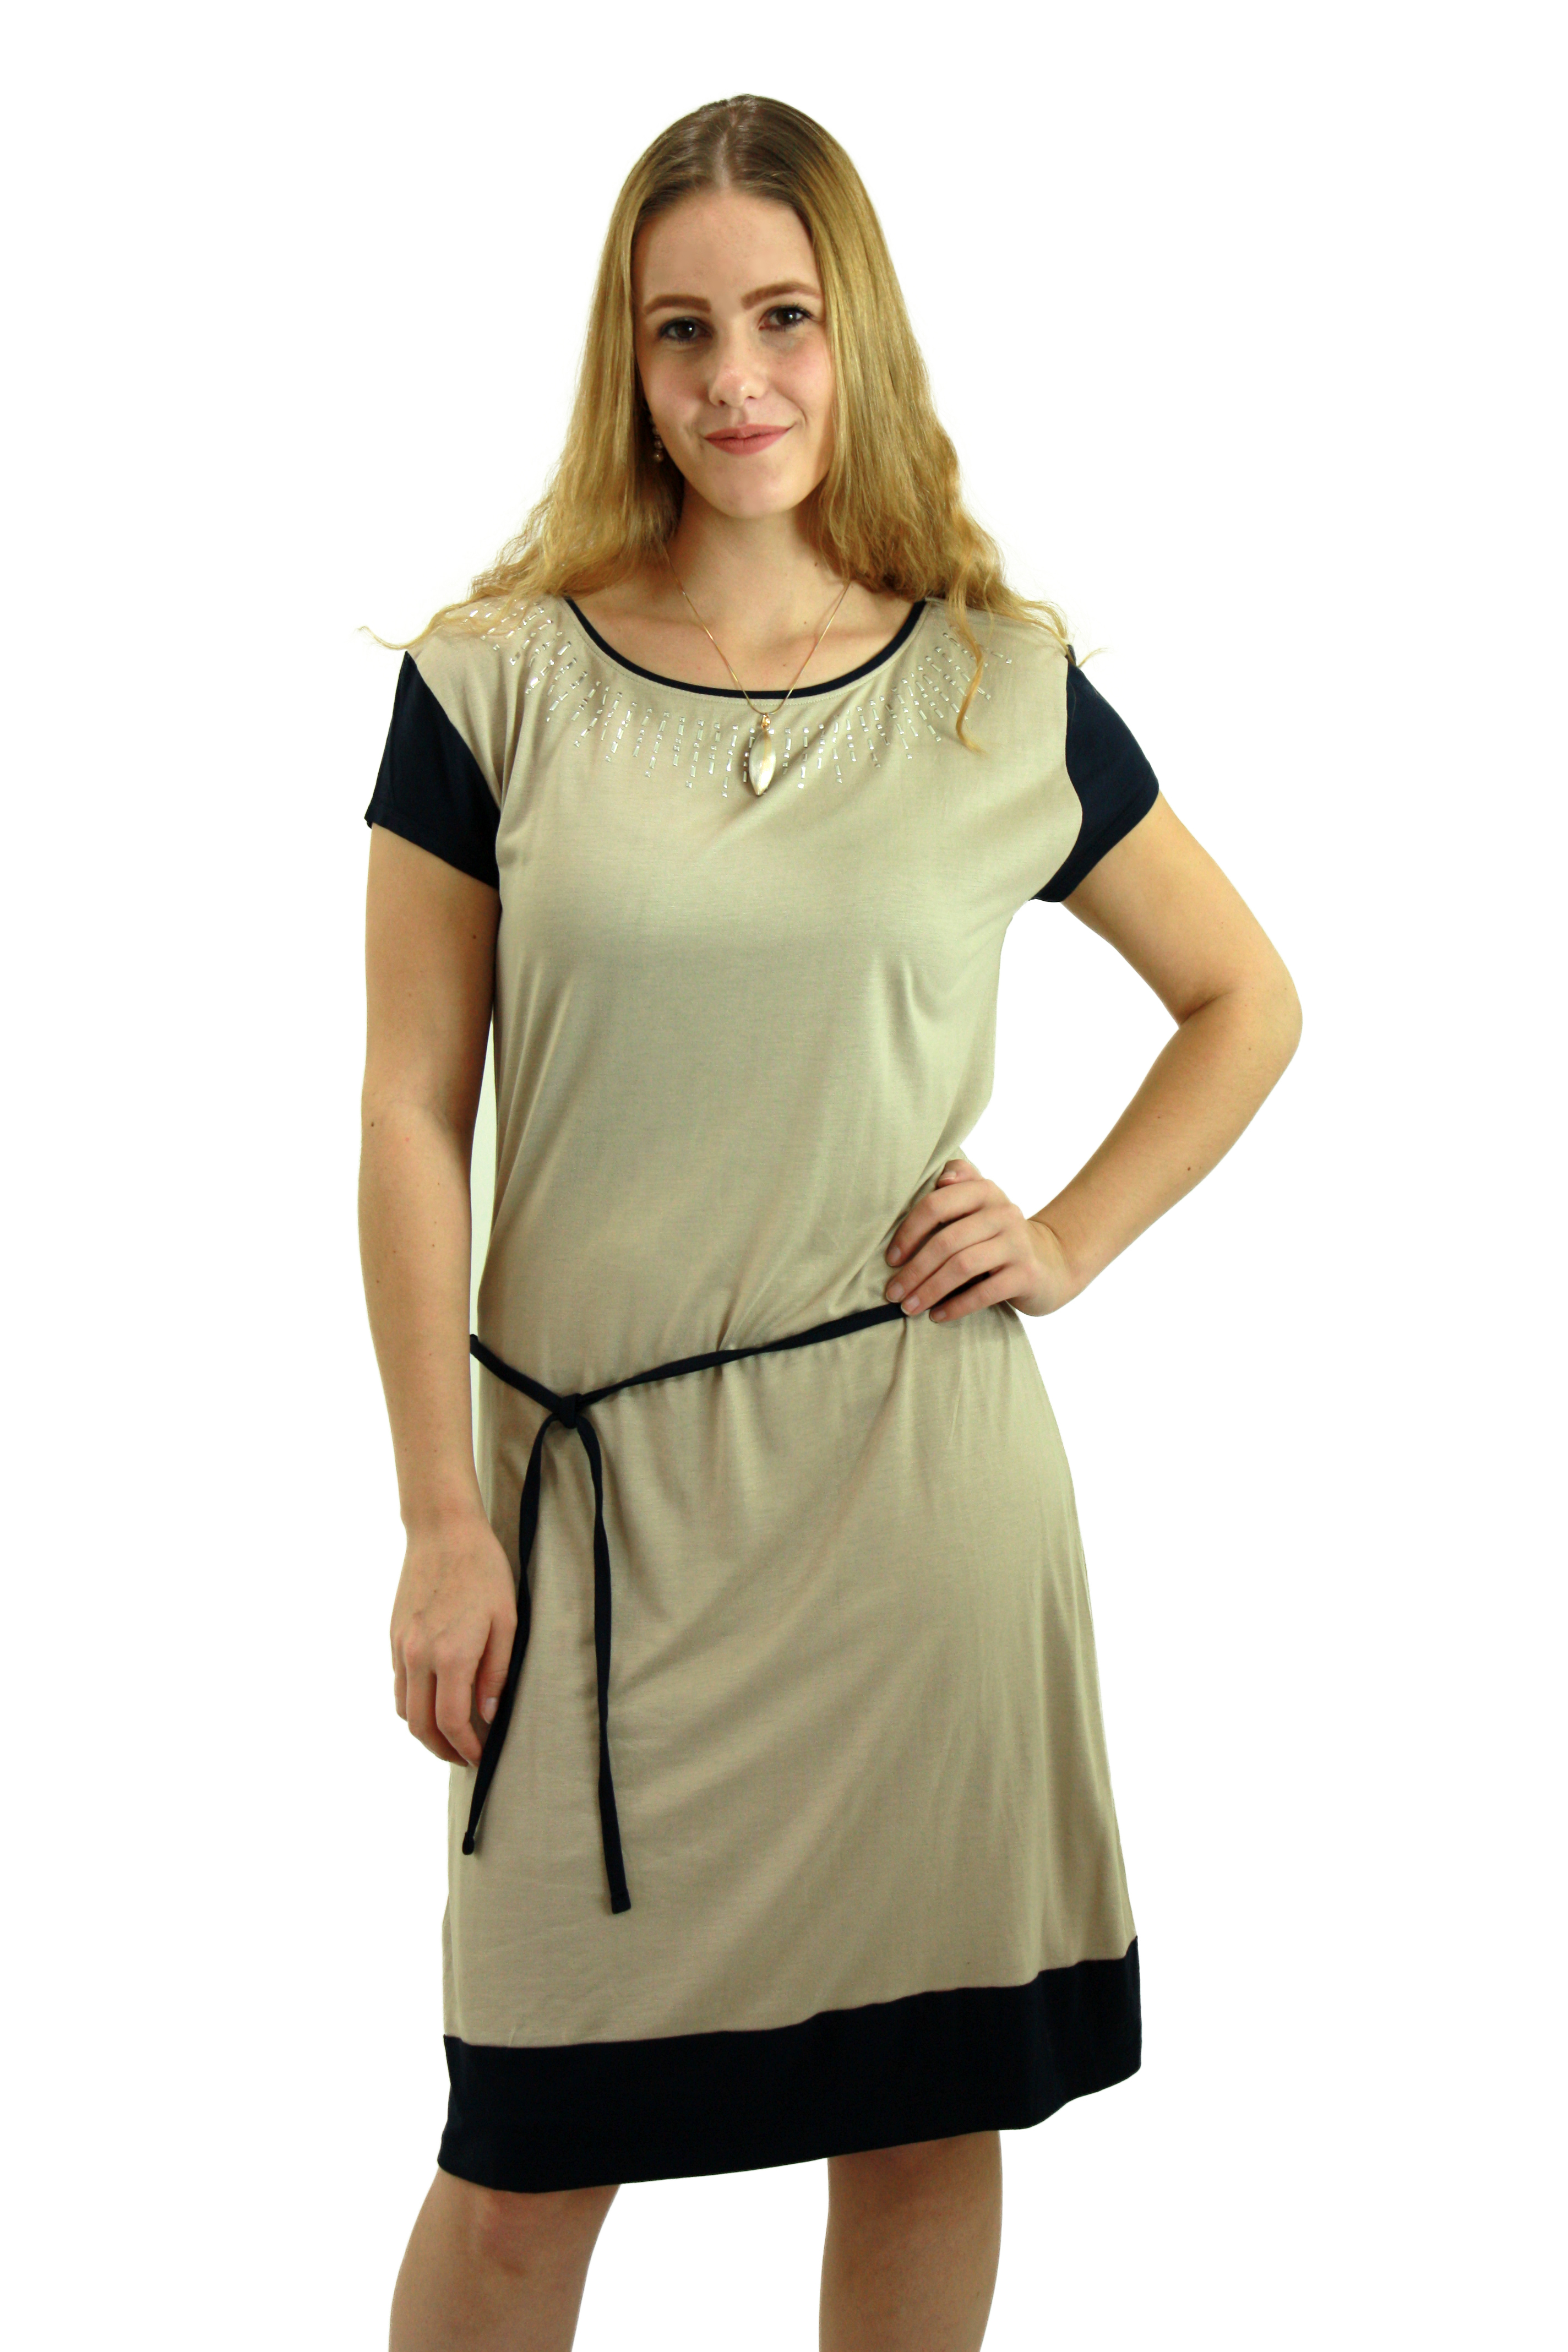 Teal and Grey tunic dress with embellished neckline LYBG009